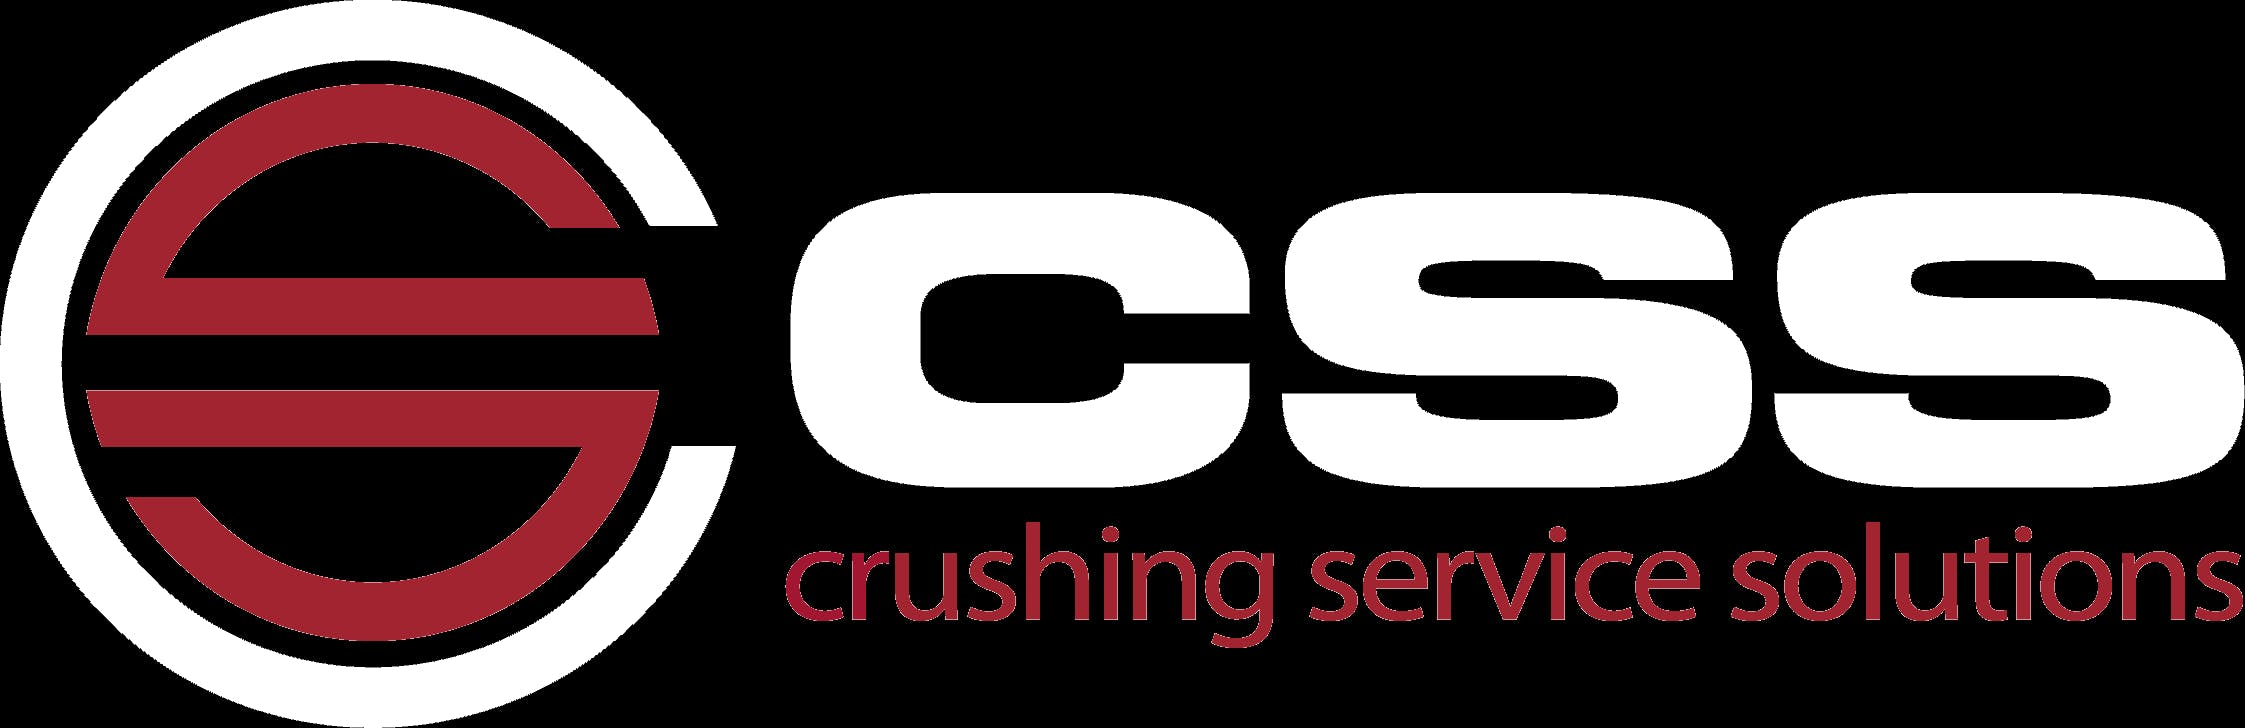 Crushing Service Solutions